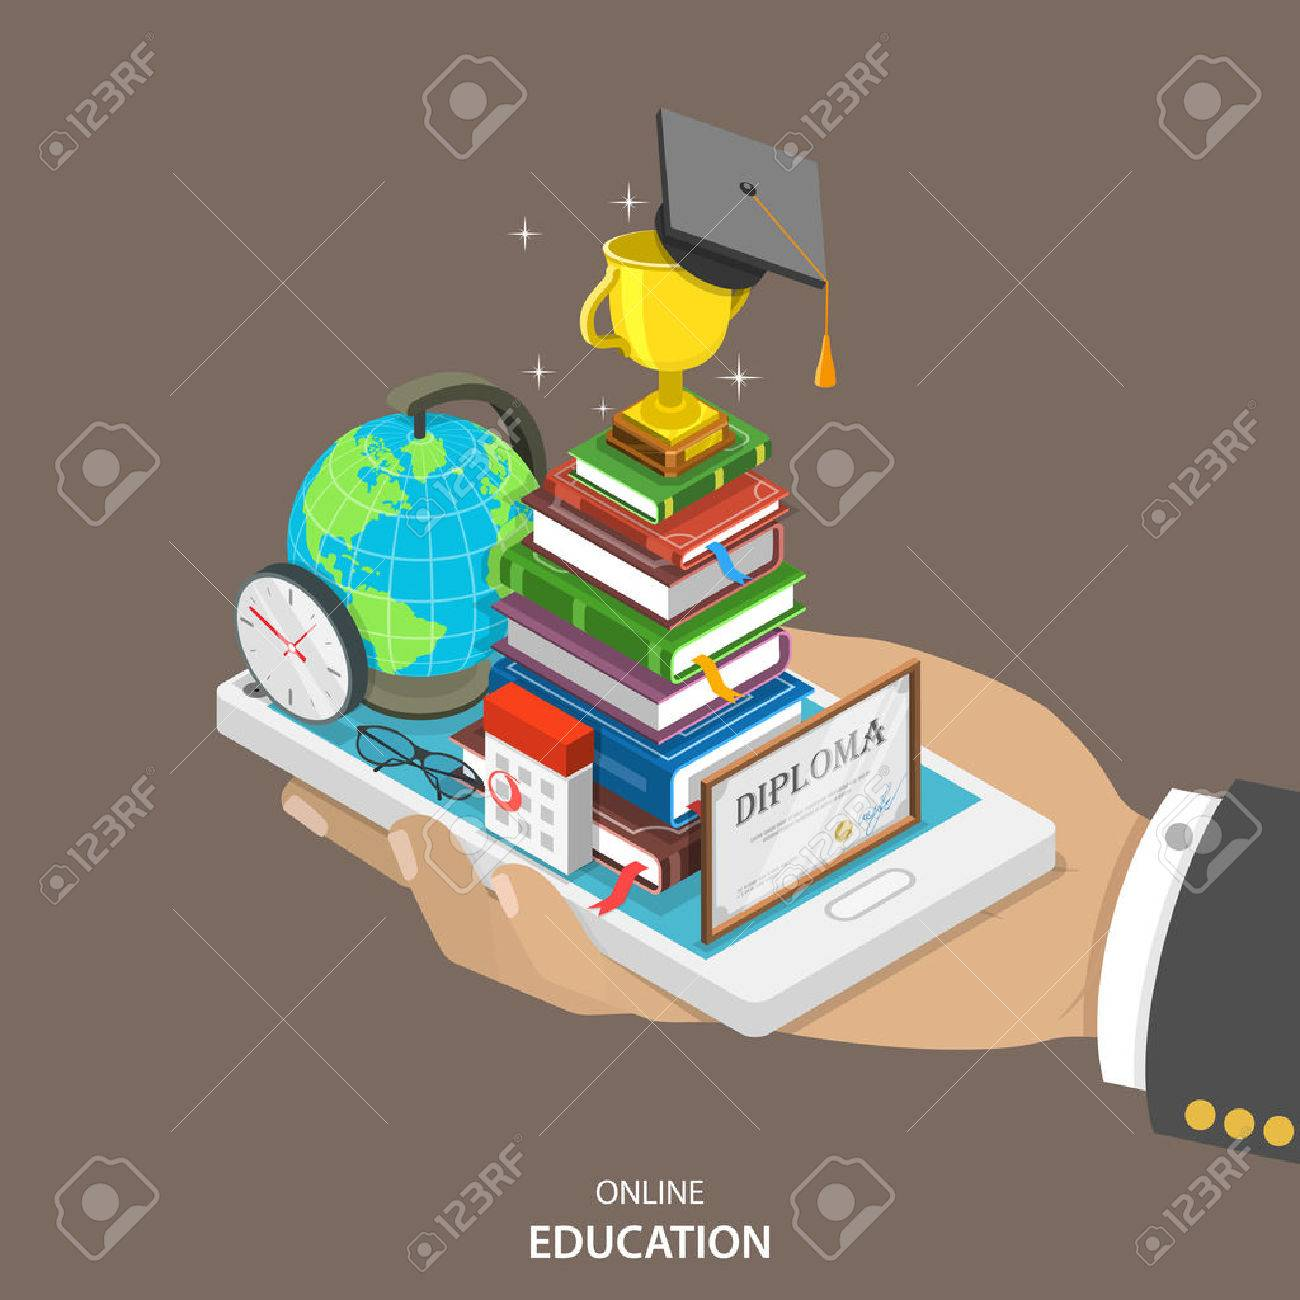 Online education isometric flat vector concept. Mans hand holds a mobile phone with education attributes like books, diploma, graduation hat. Distant learning service. - 50042298